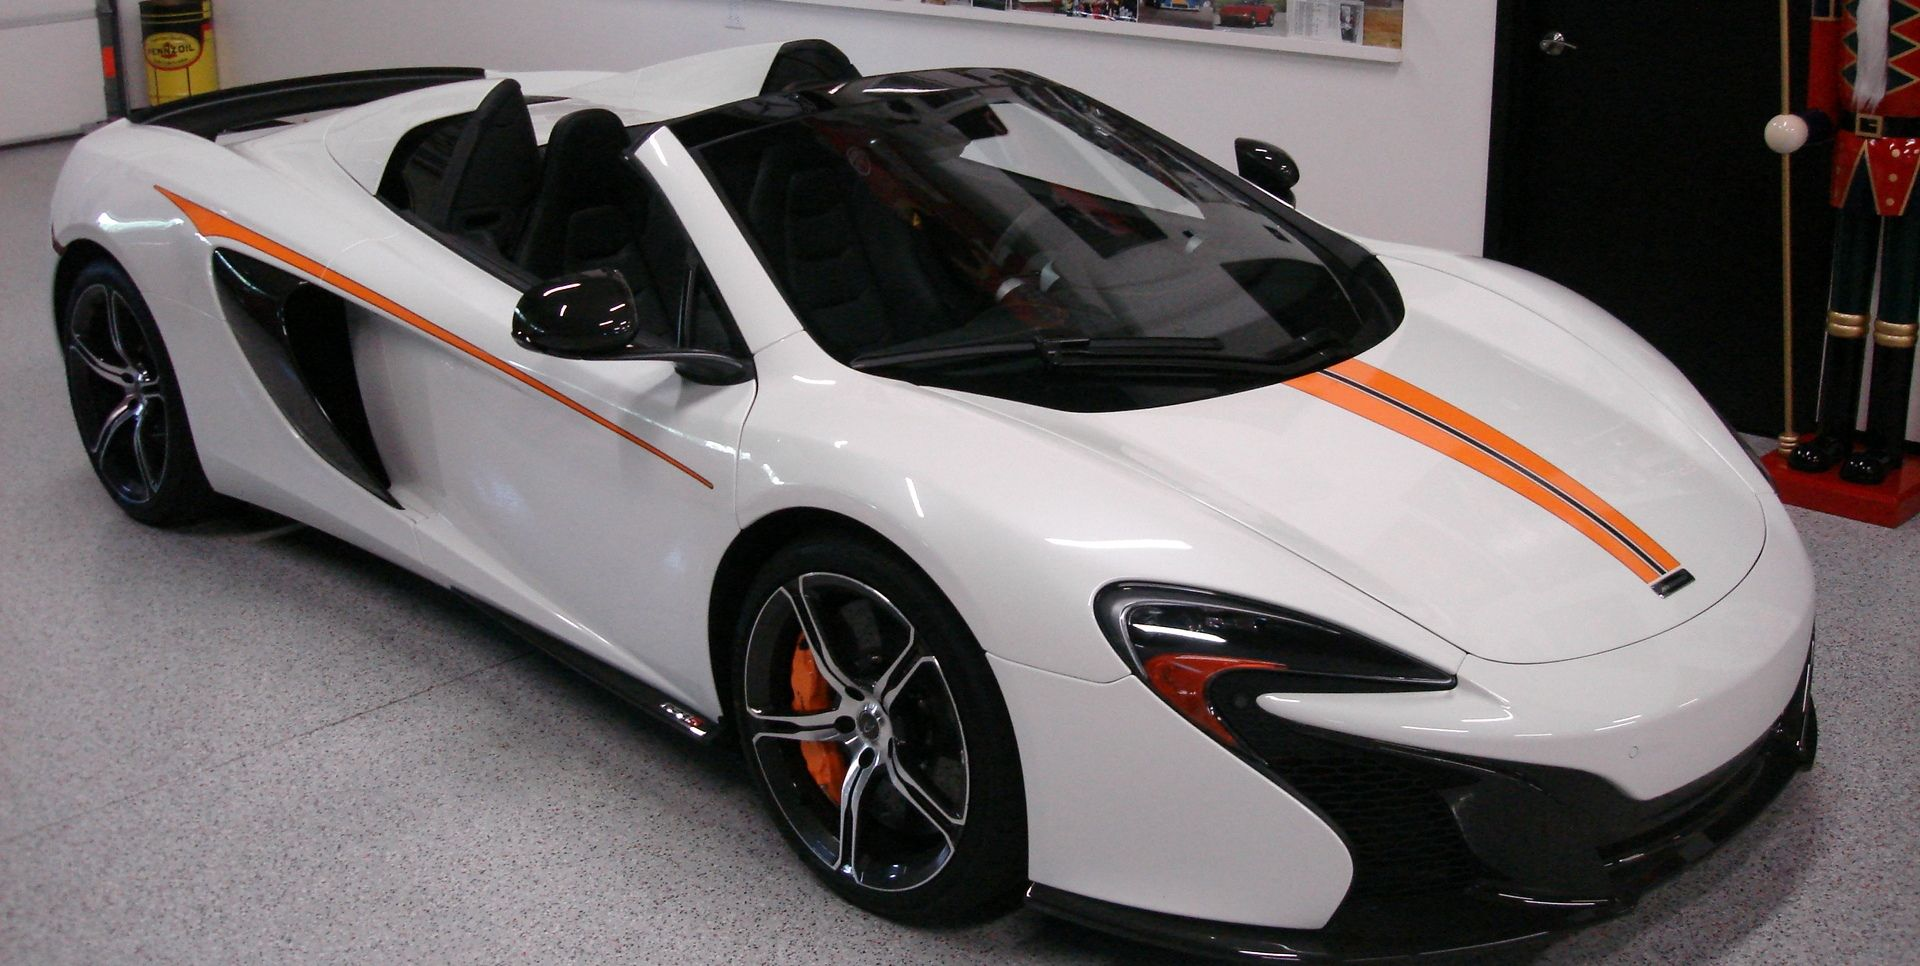 2015 mclaren 650s spider review and price - the supercar options are